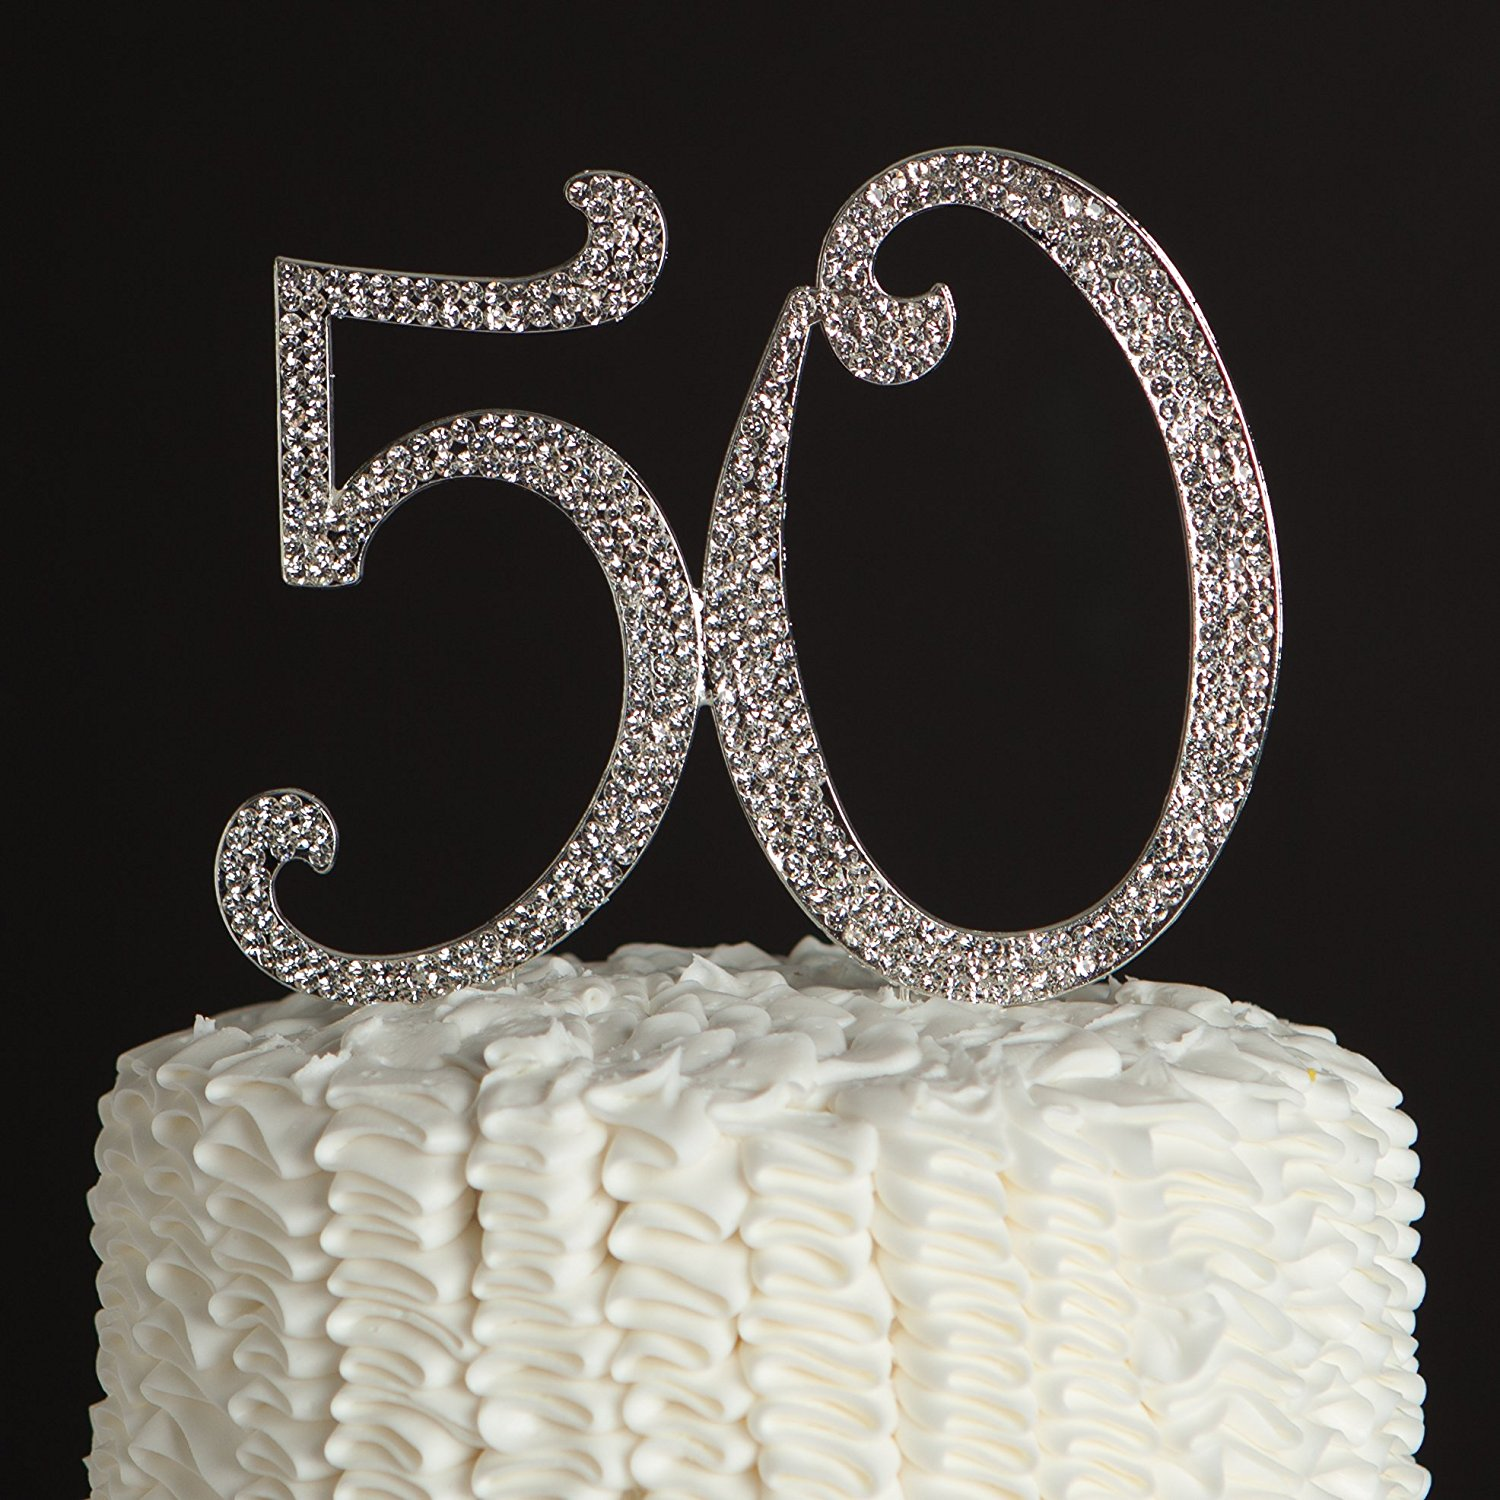 ella celebration 50 cake topper 50th birthday anniversary party silver rhinestone number party decoration (silver)